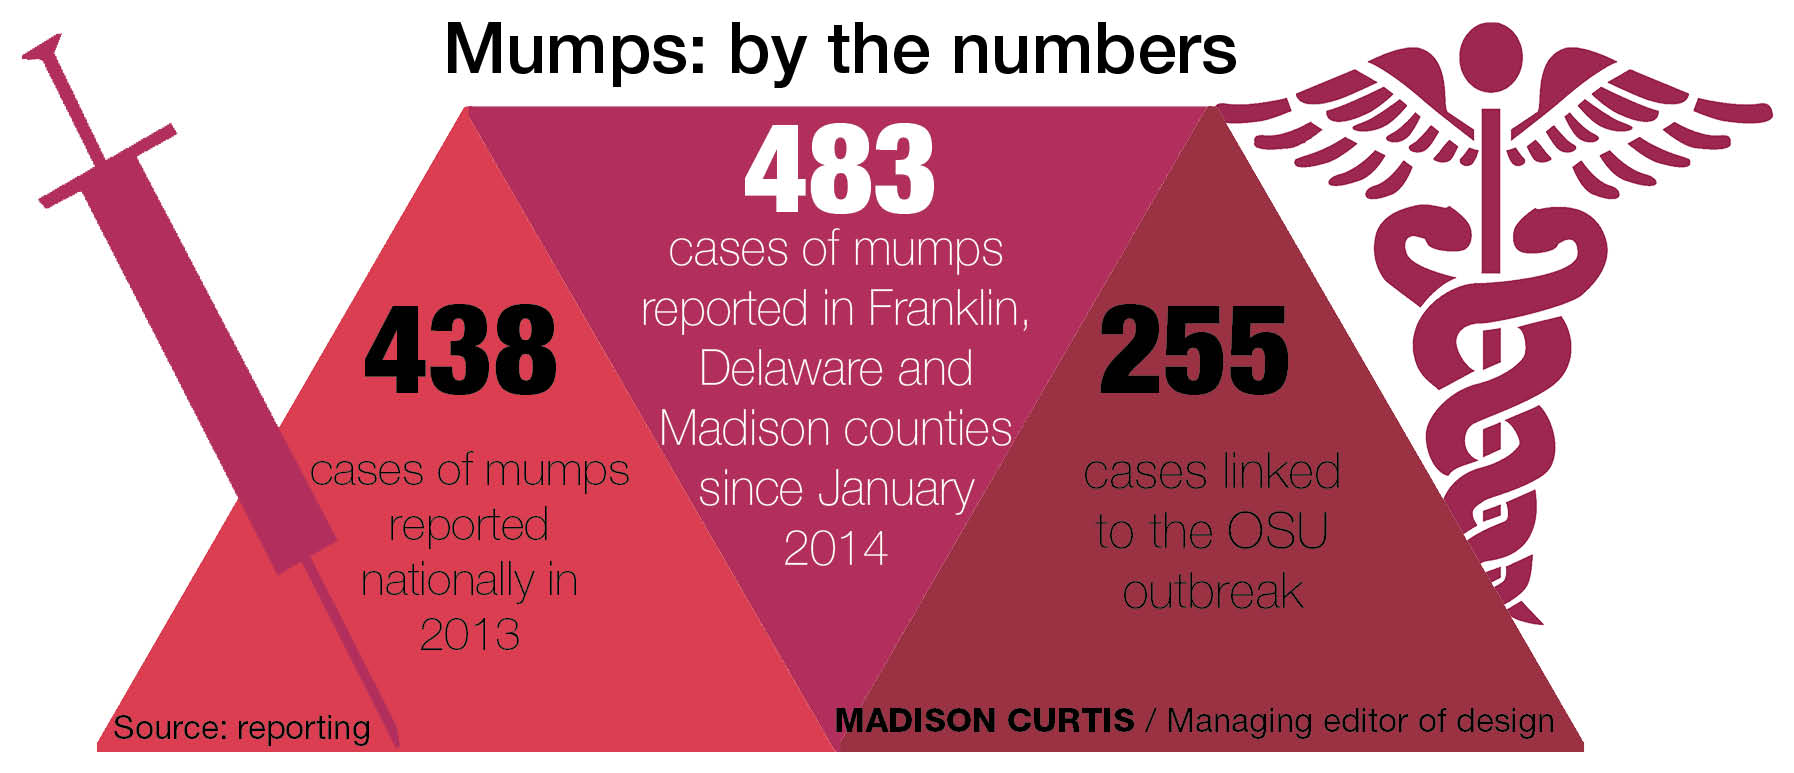 Mumps in the US 2016: Most cases seen in a decade - Outbreak News ...